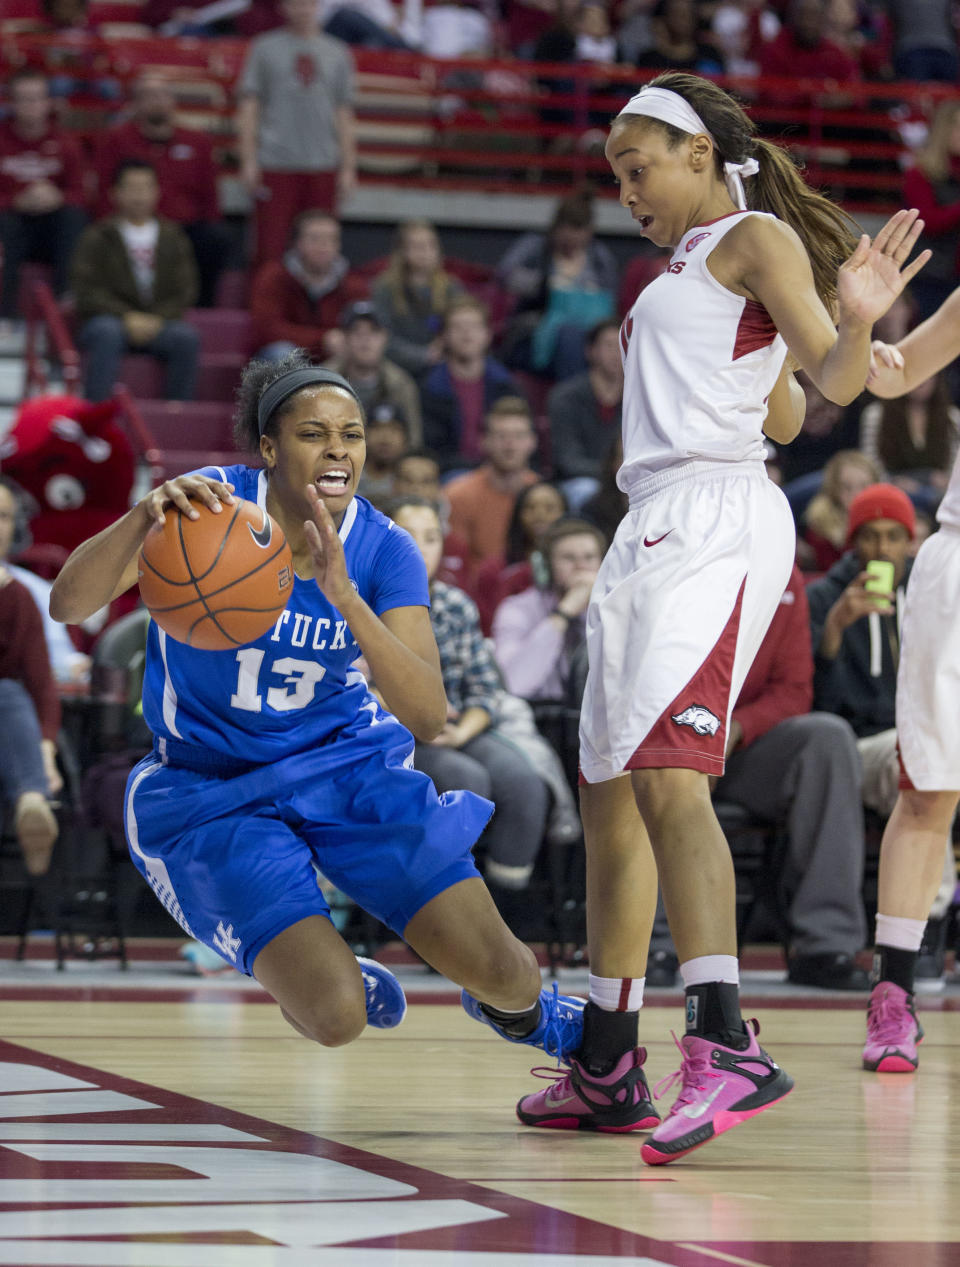 Kentucky guard Bria Goss, left, falls after running into Arkansas guard Kelsey Brooks, right, during the second half of an NCAA college basketball game Thursday, Feb. 26, 2015, in Fayetteville, Ark. Kentucky defeated Arkansas 56-51. (AP Photo/Gareth Patterson)